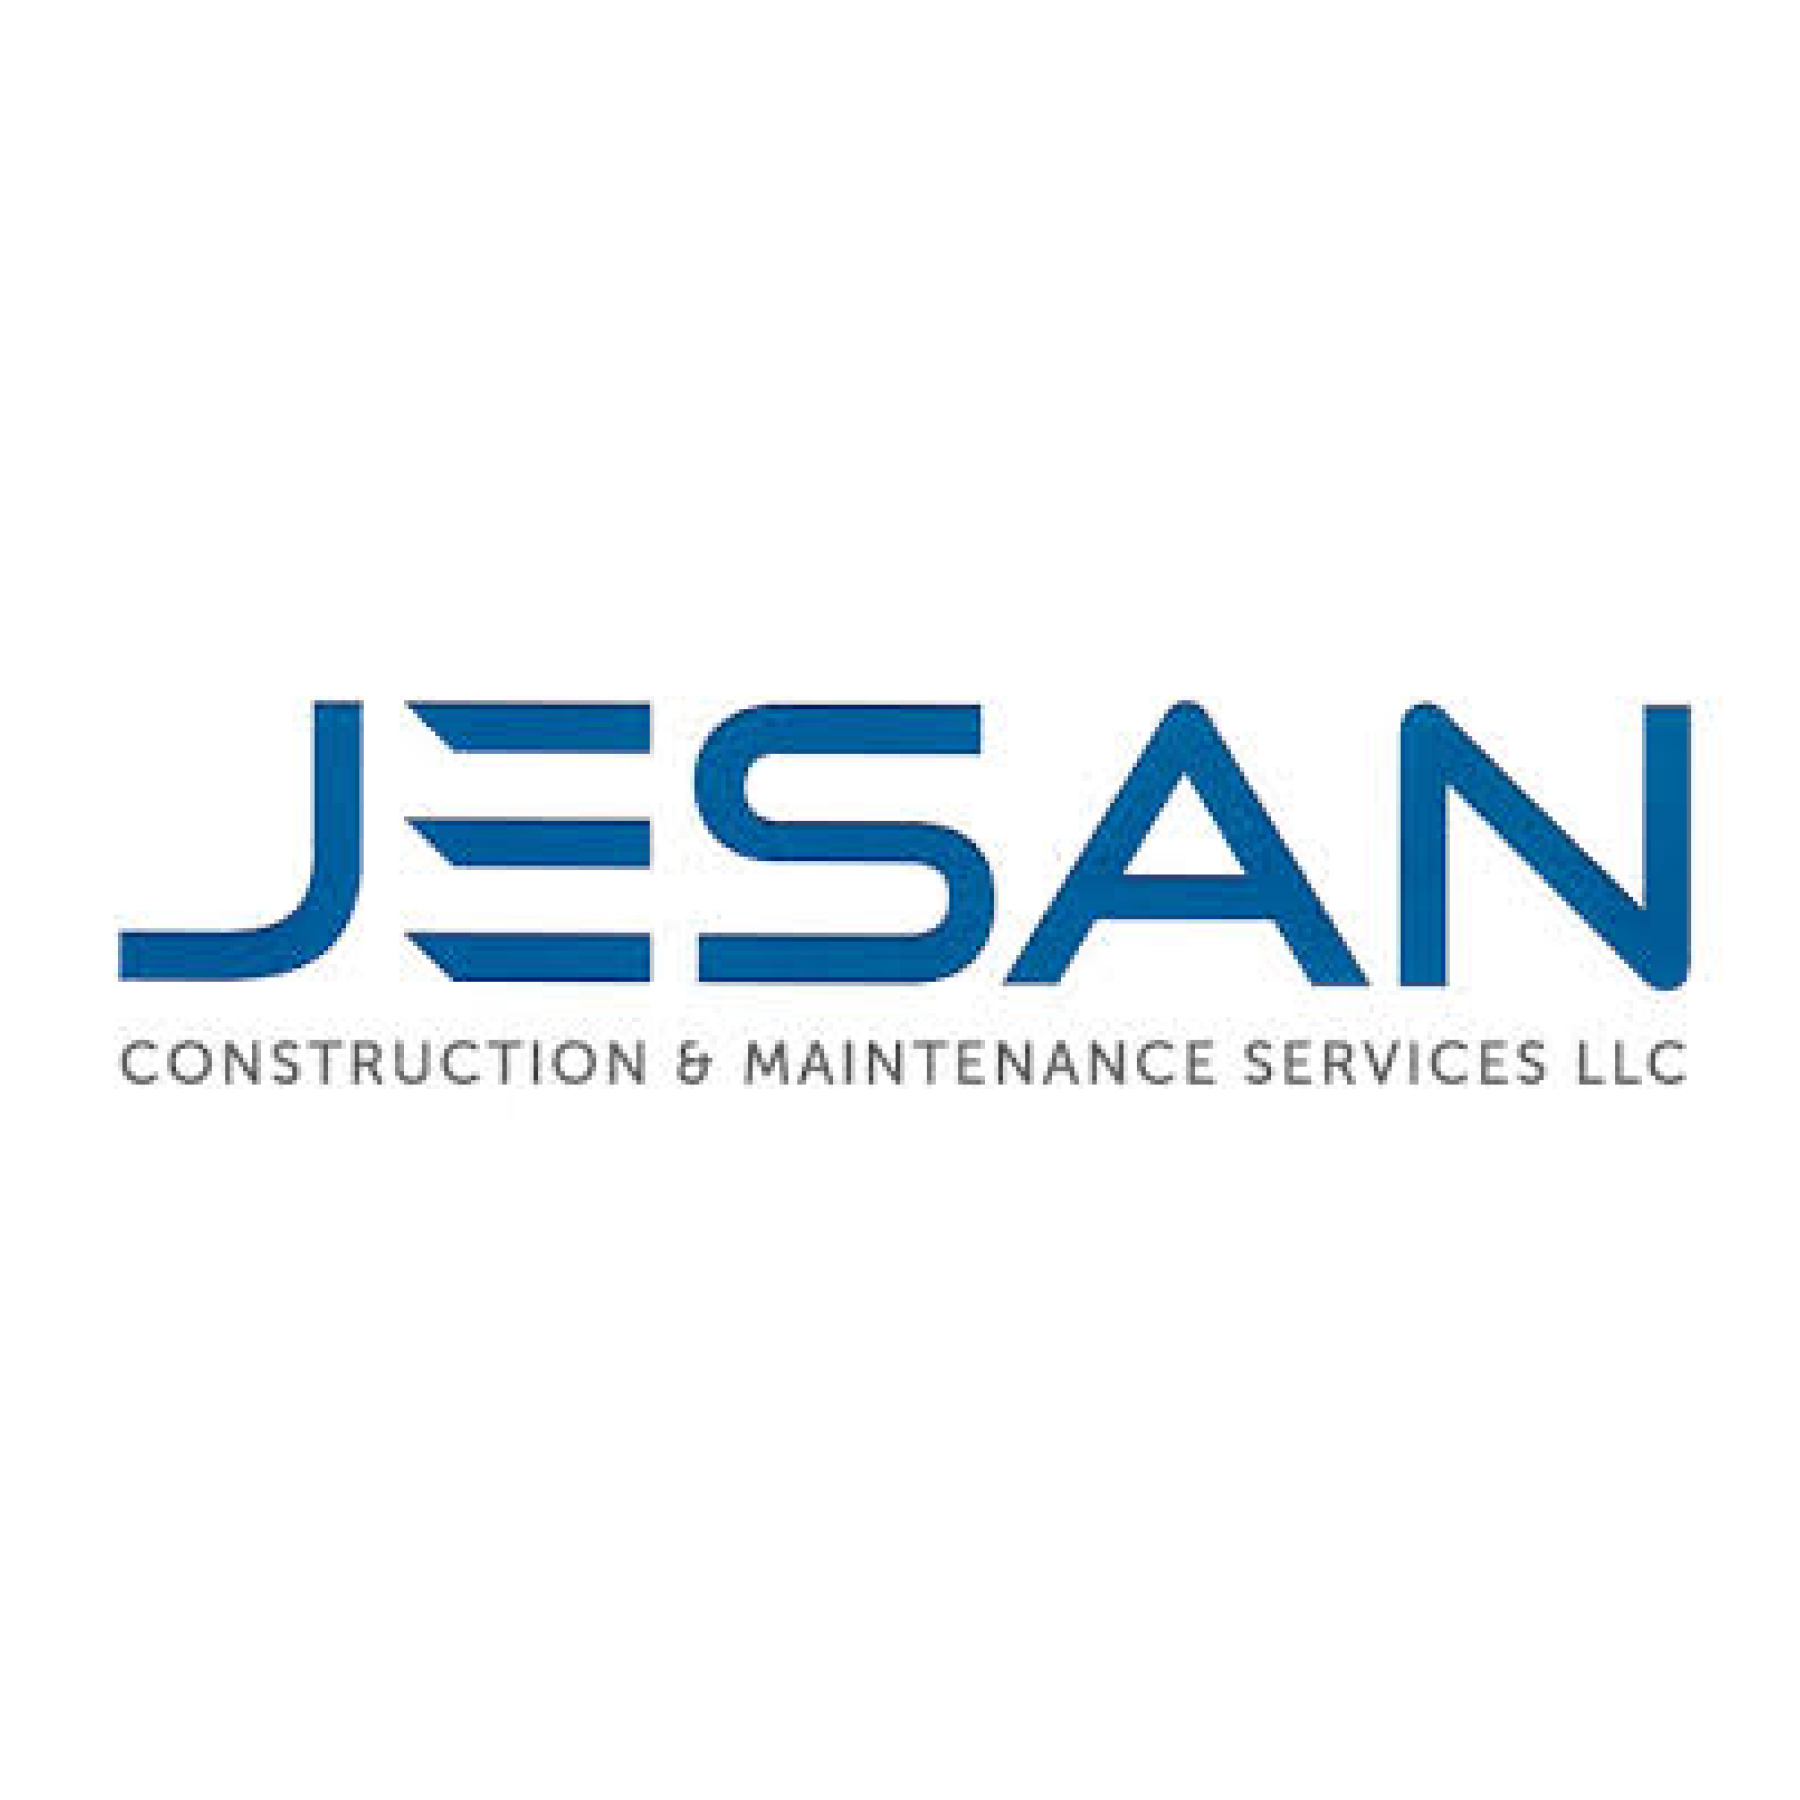 Jesan Construction & Maintenance